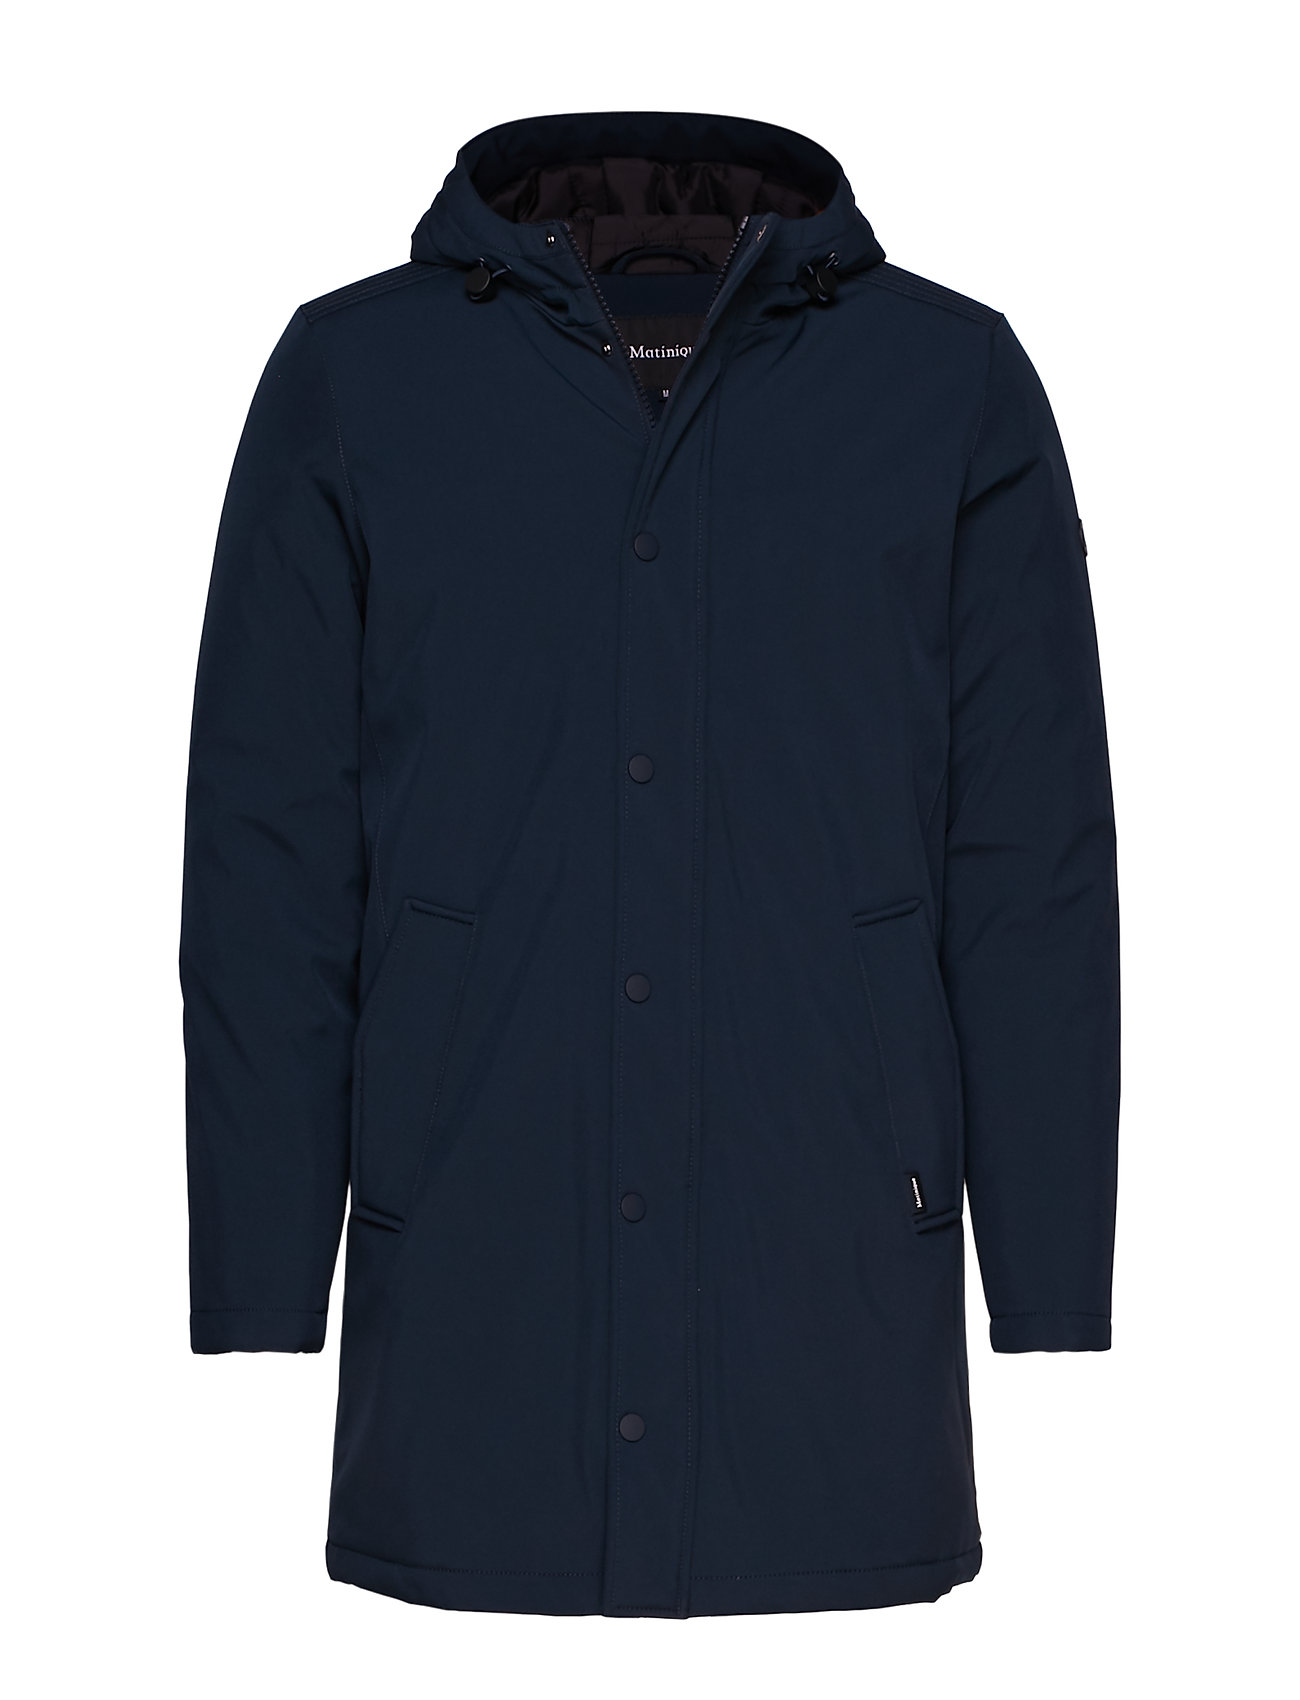 Matinique Deston Campaign Hood - DARK NAVY